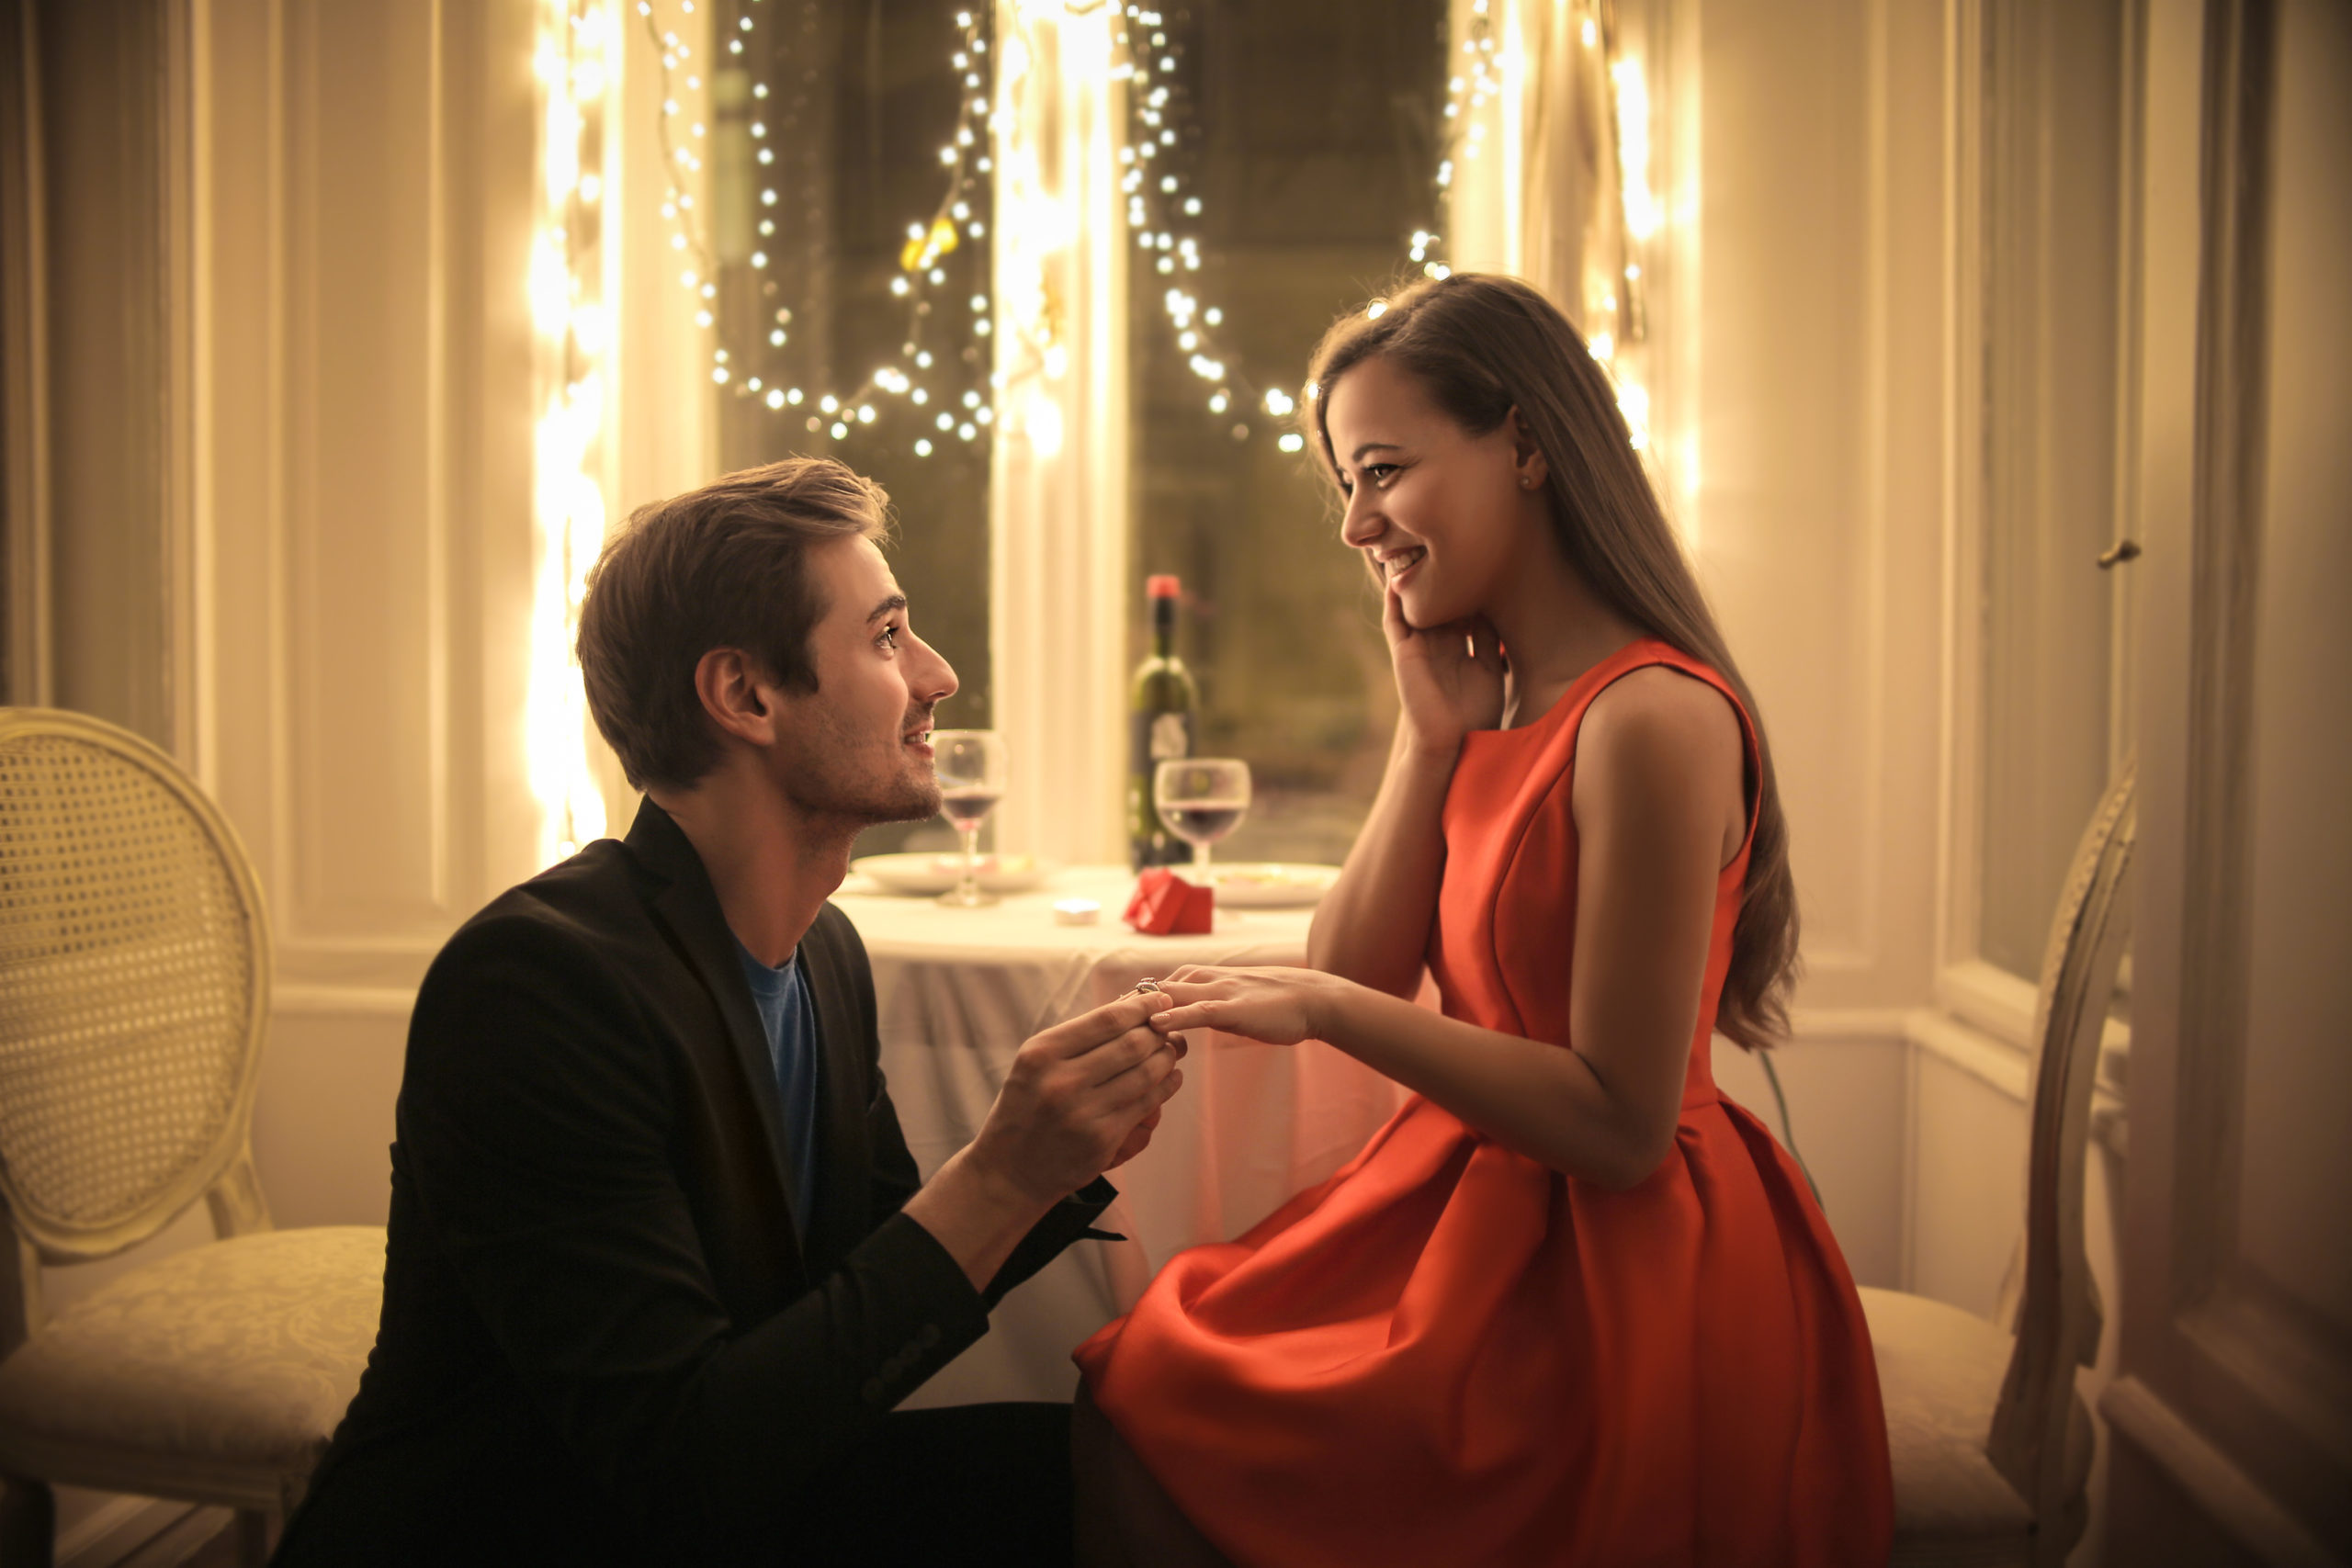 handsome-man-proposing-beautiful-woman-marry-730621447